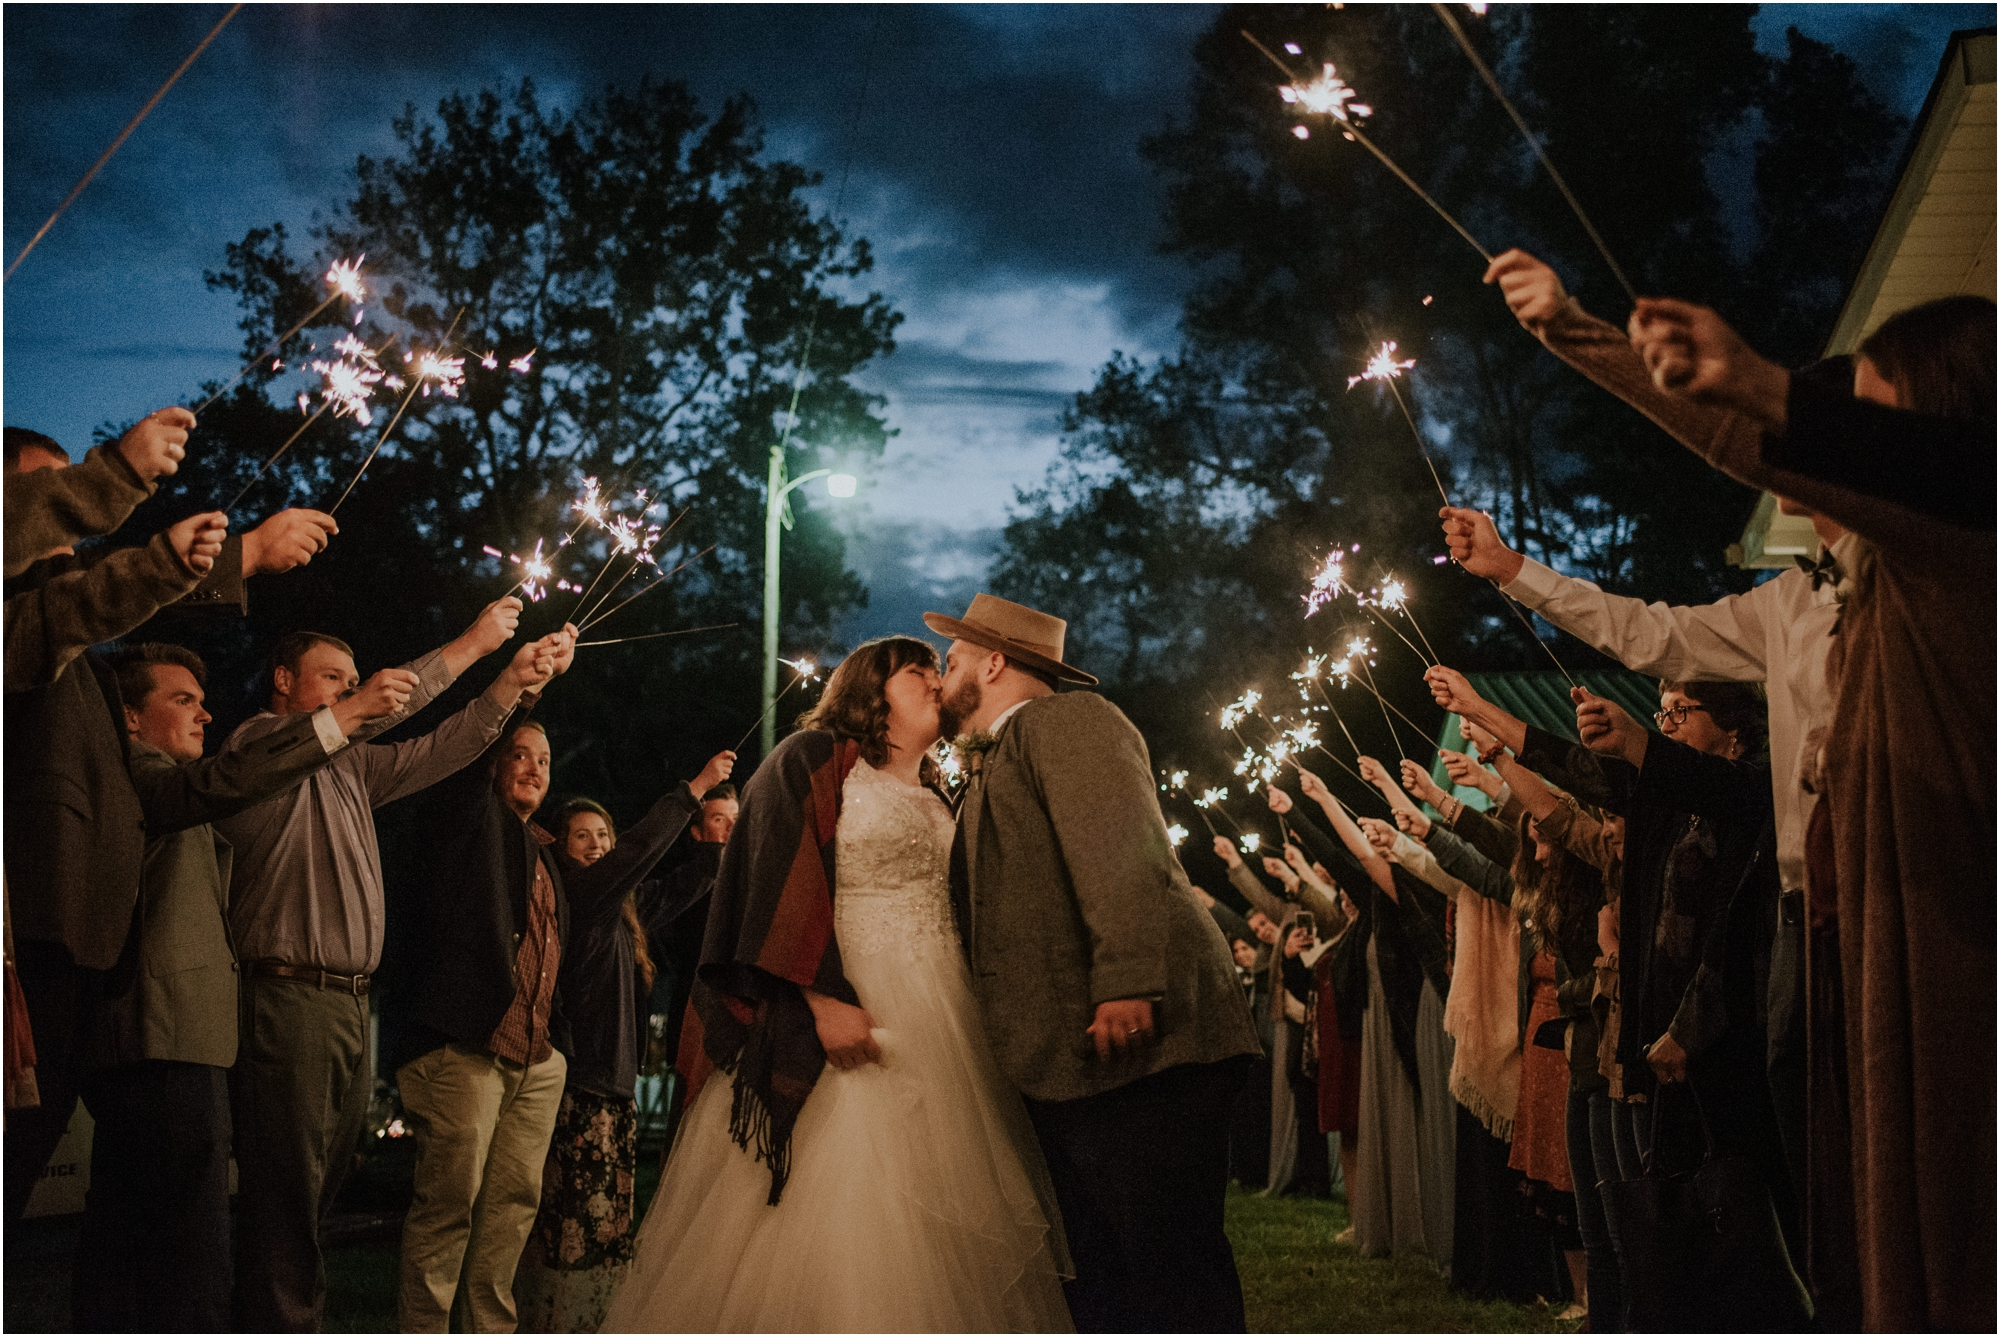 caryville-robbins-middle-tennessee-intimate-cozy-fall-navy-rustic-backyard-wedding_0141.jpg